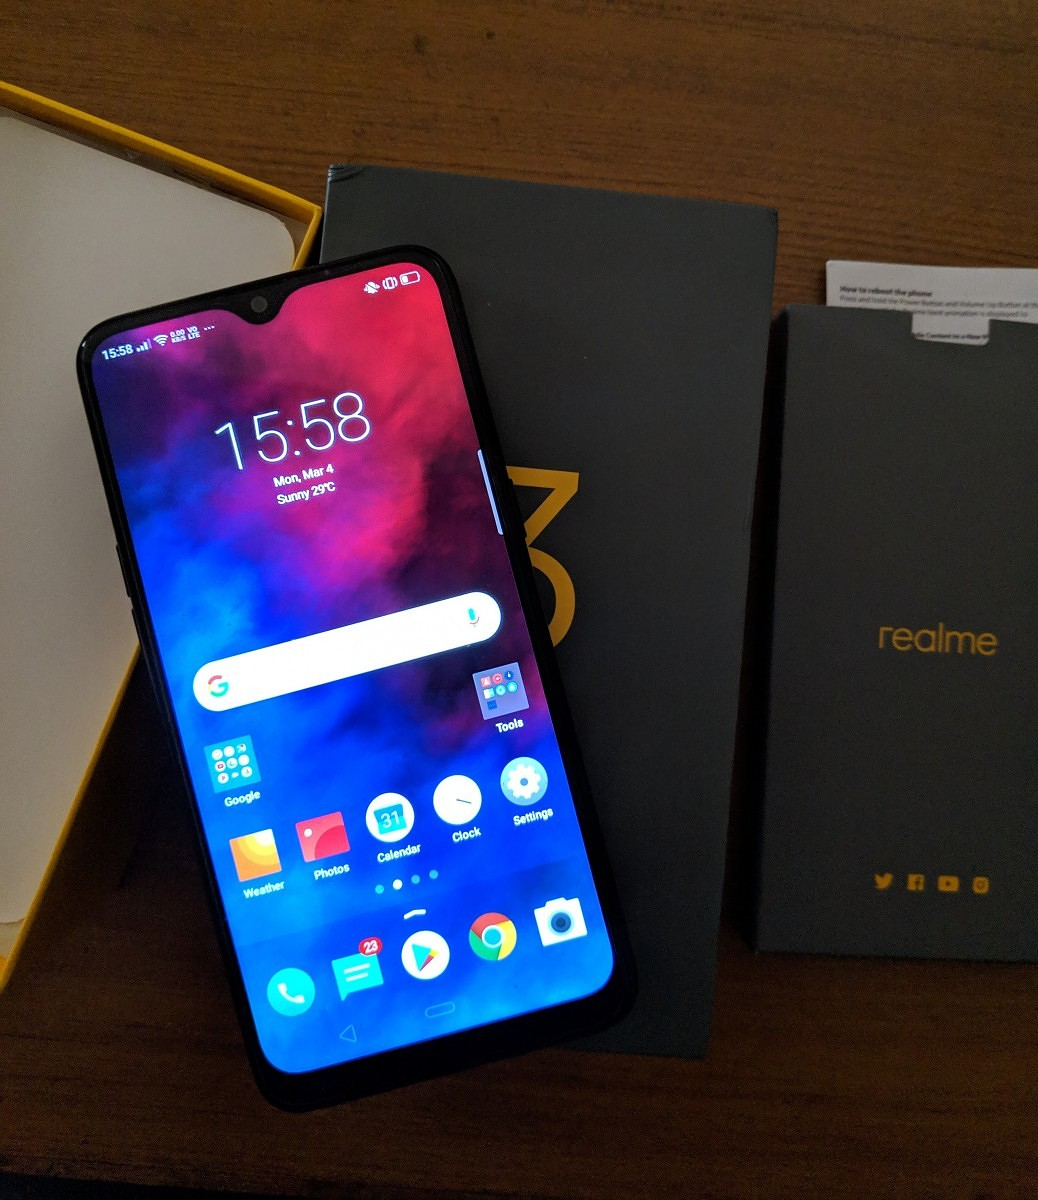 Realme 3 Review - A solid device in a crowded market